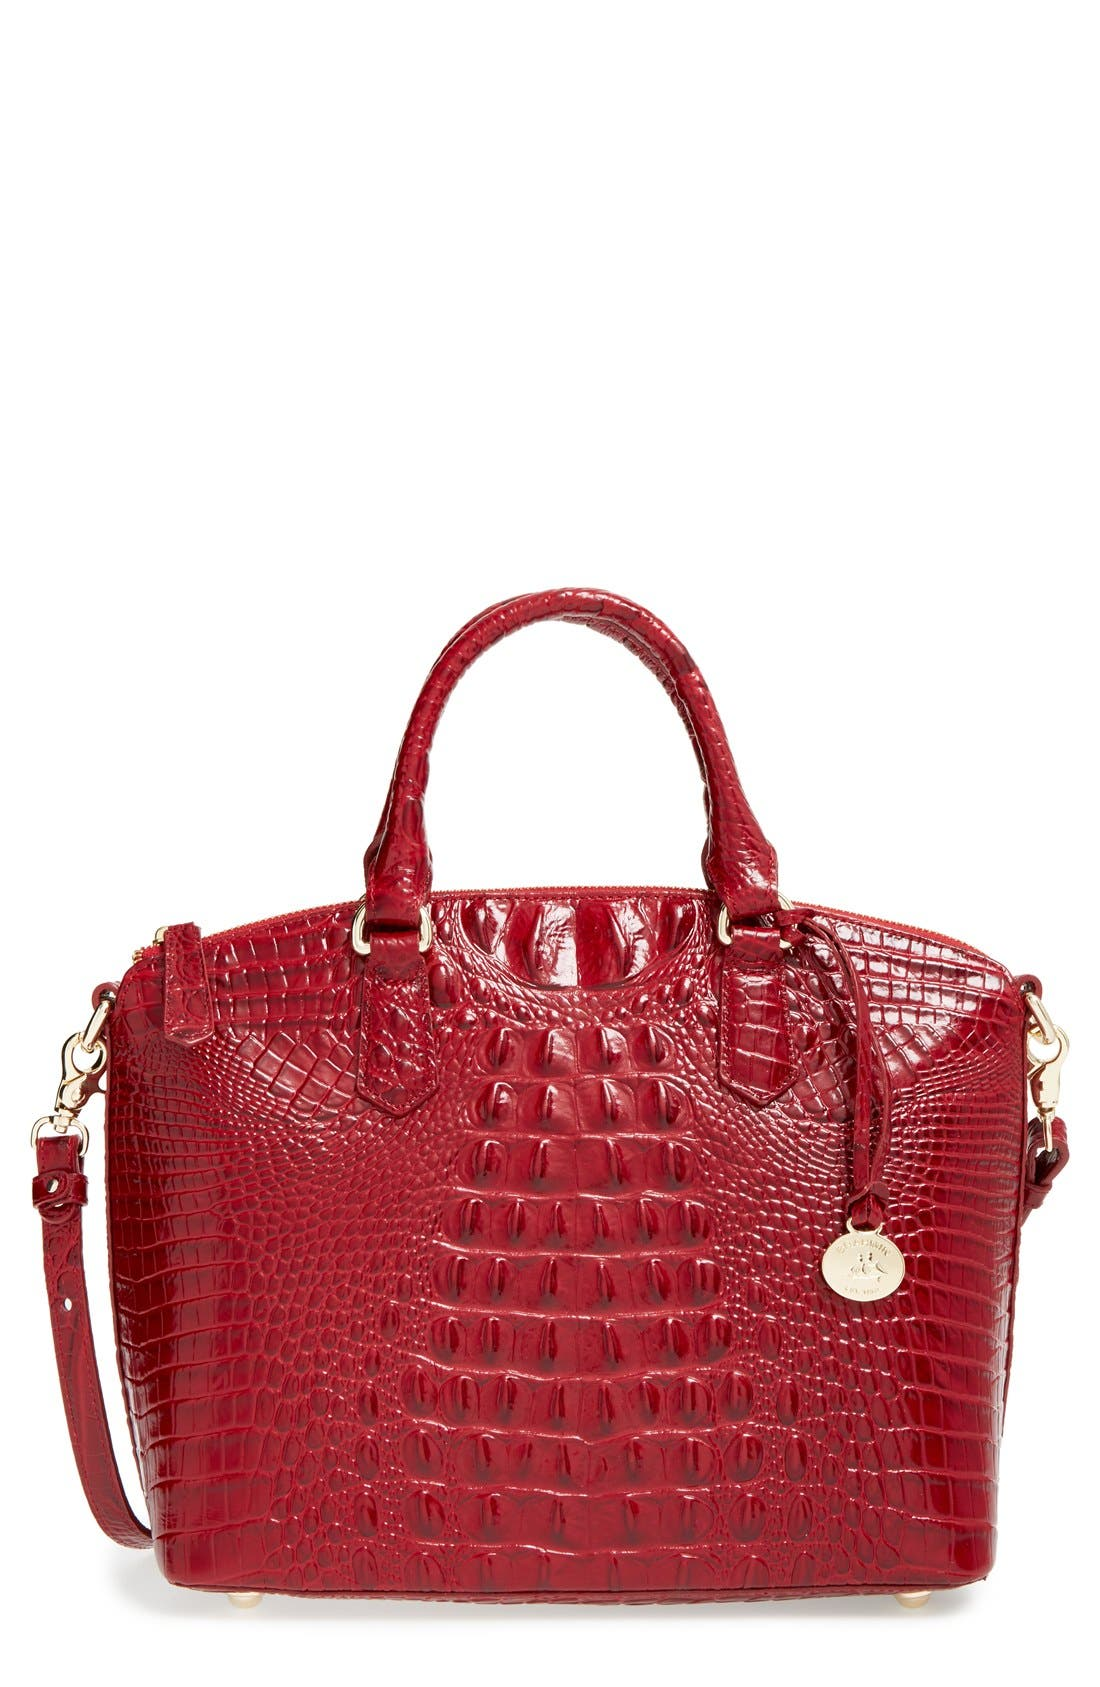 'Medium Duxbury' Croc Embossed Leather Satchel,                             Main thumbnail 20, color,